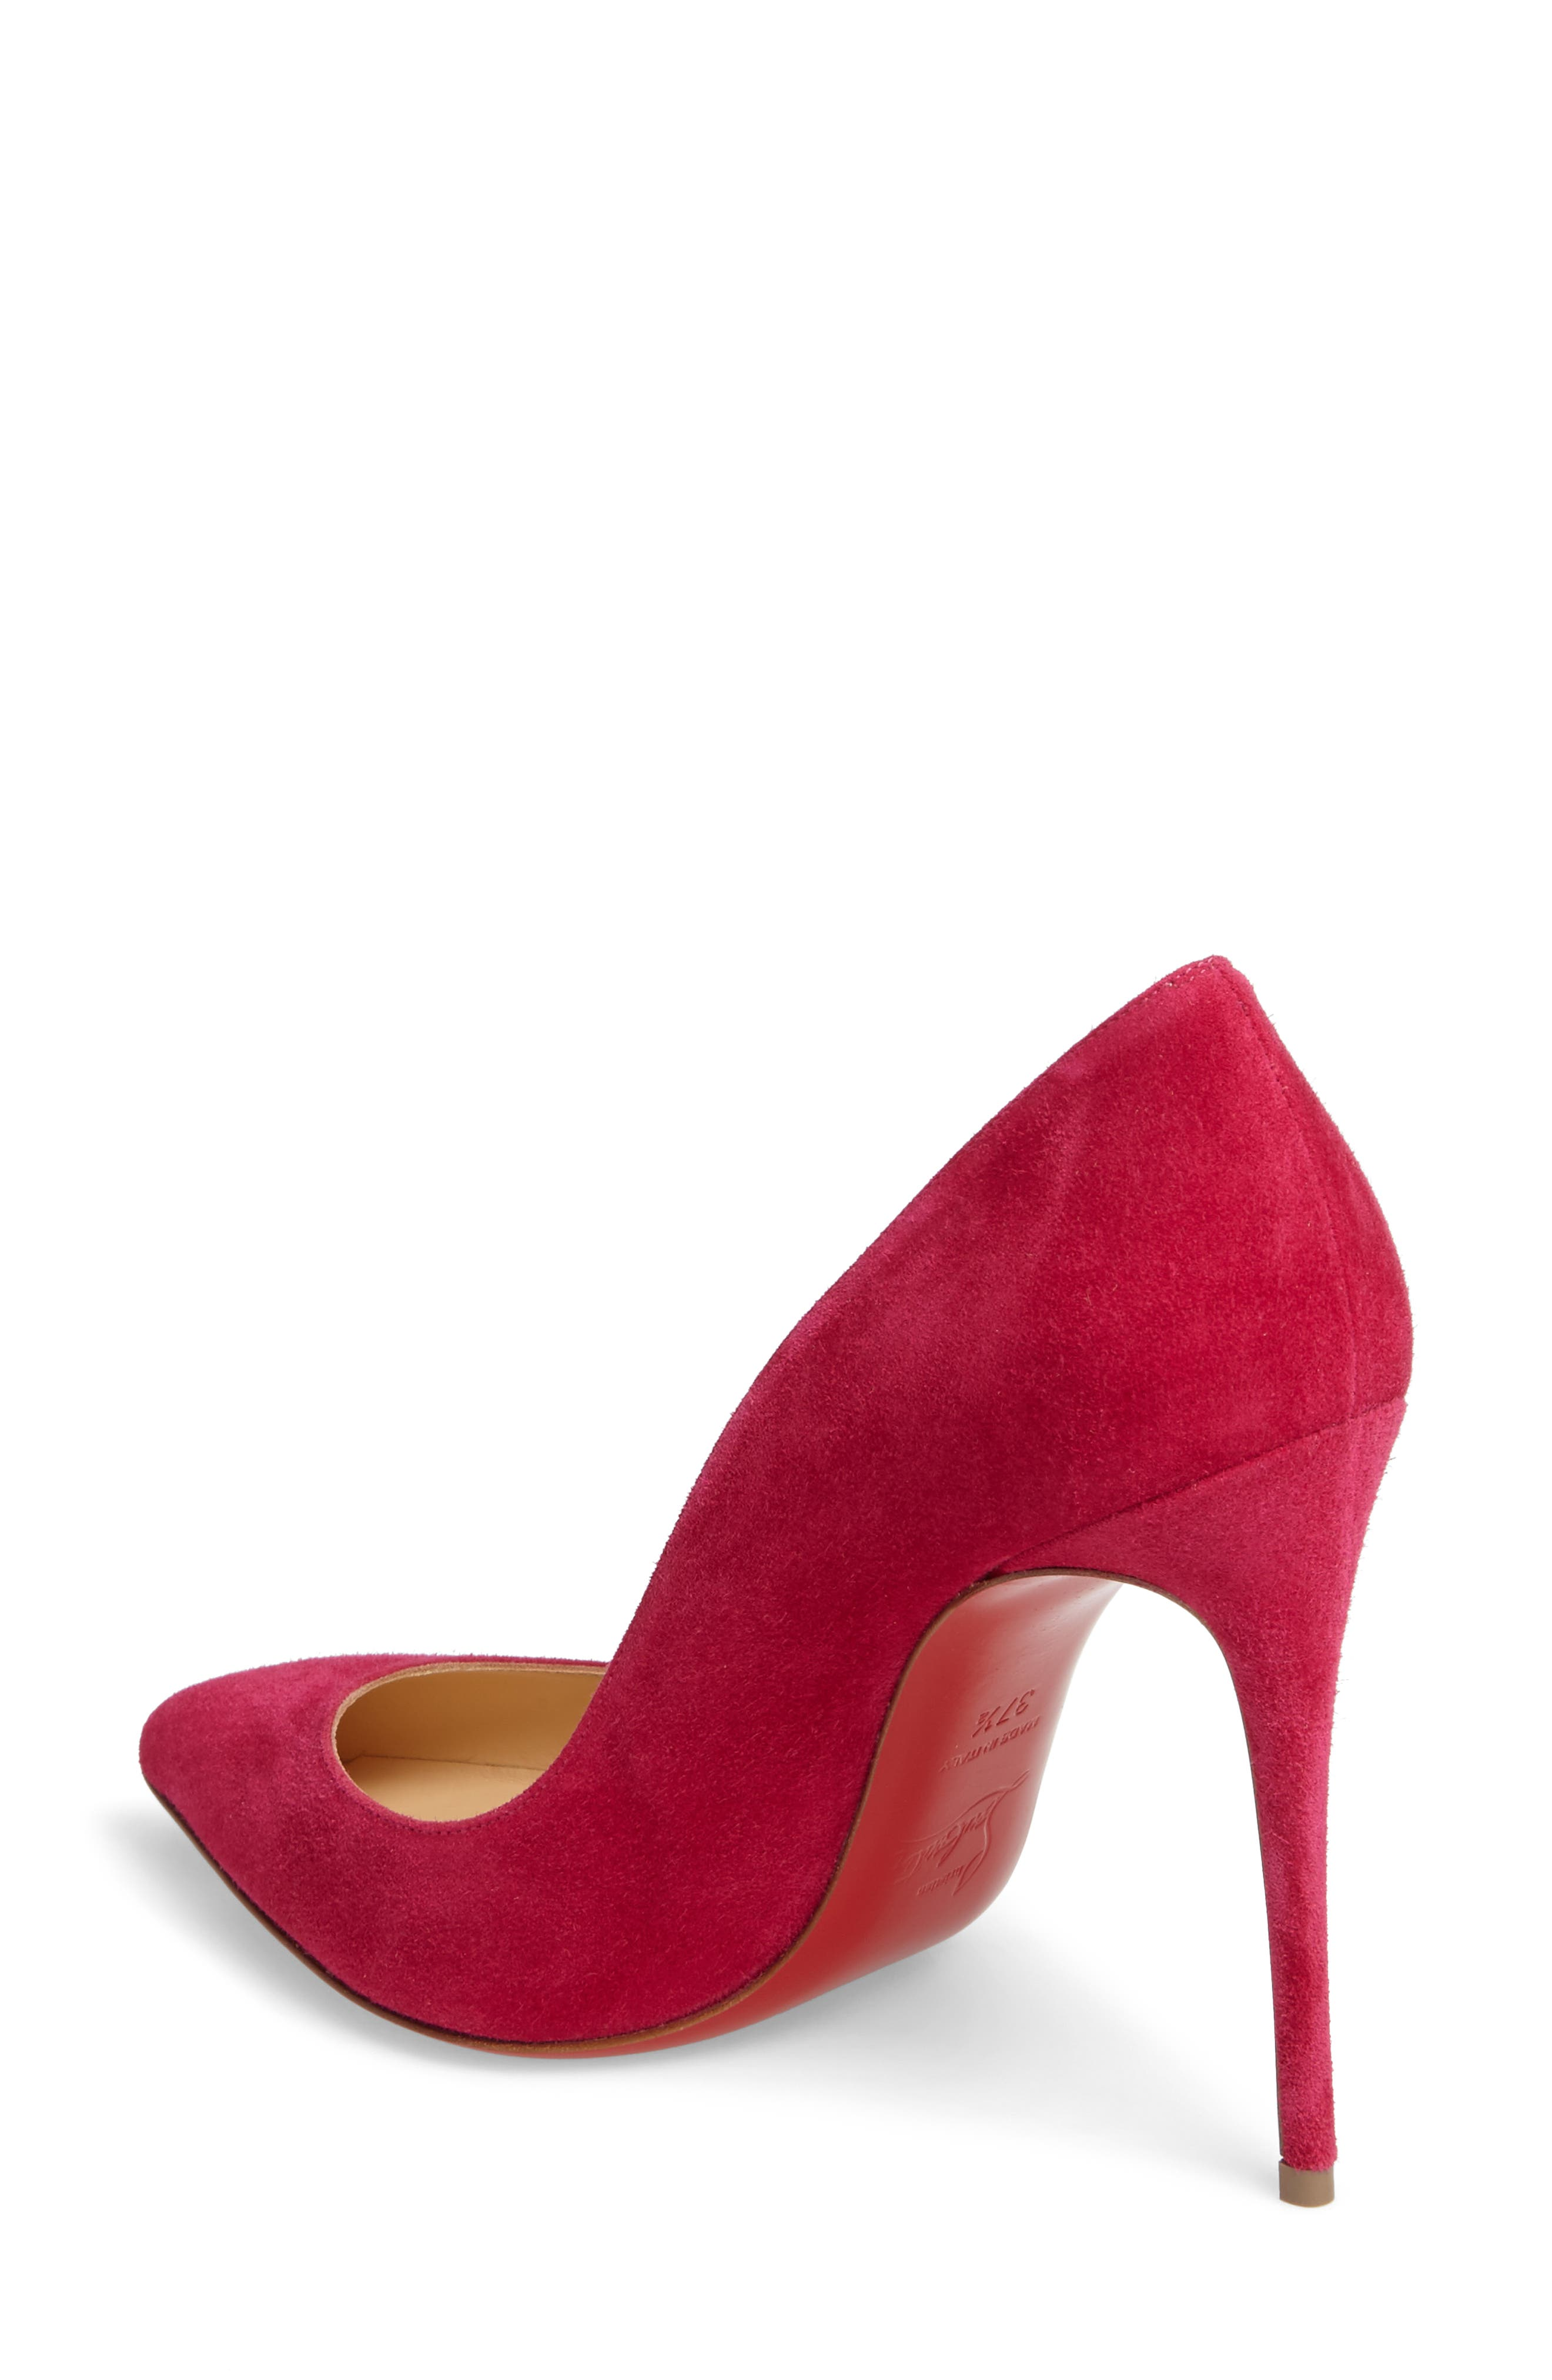 Pigalle Follies Pointy Toe Pump,                             Alternate thumbnail 2, color,                             Rosa Suede